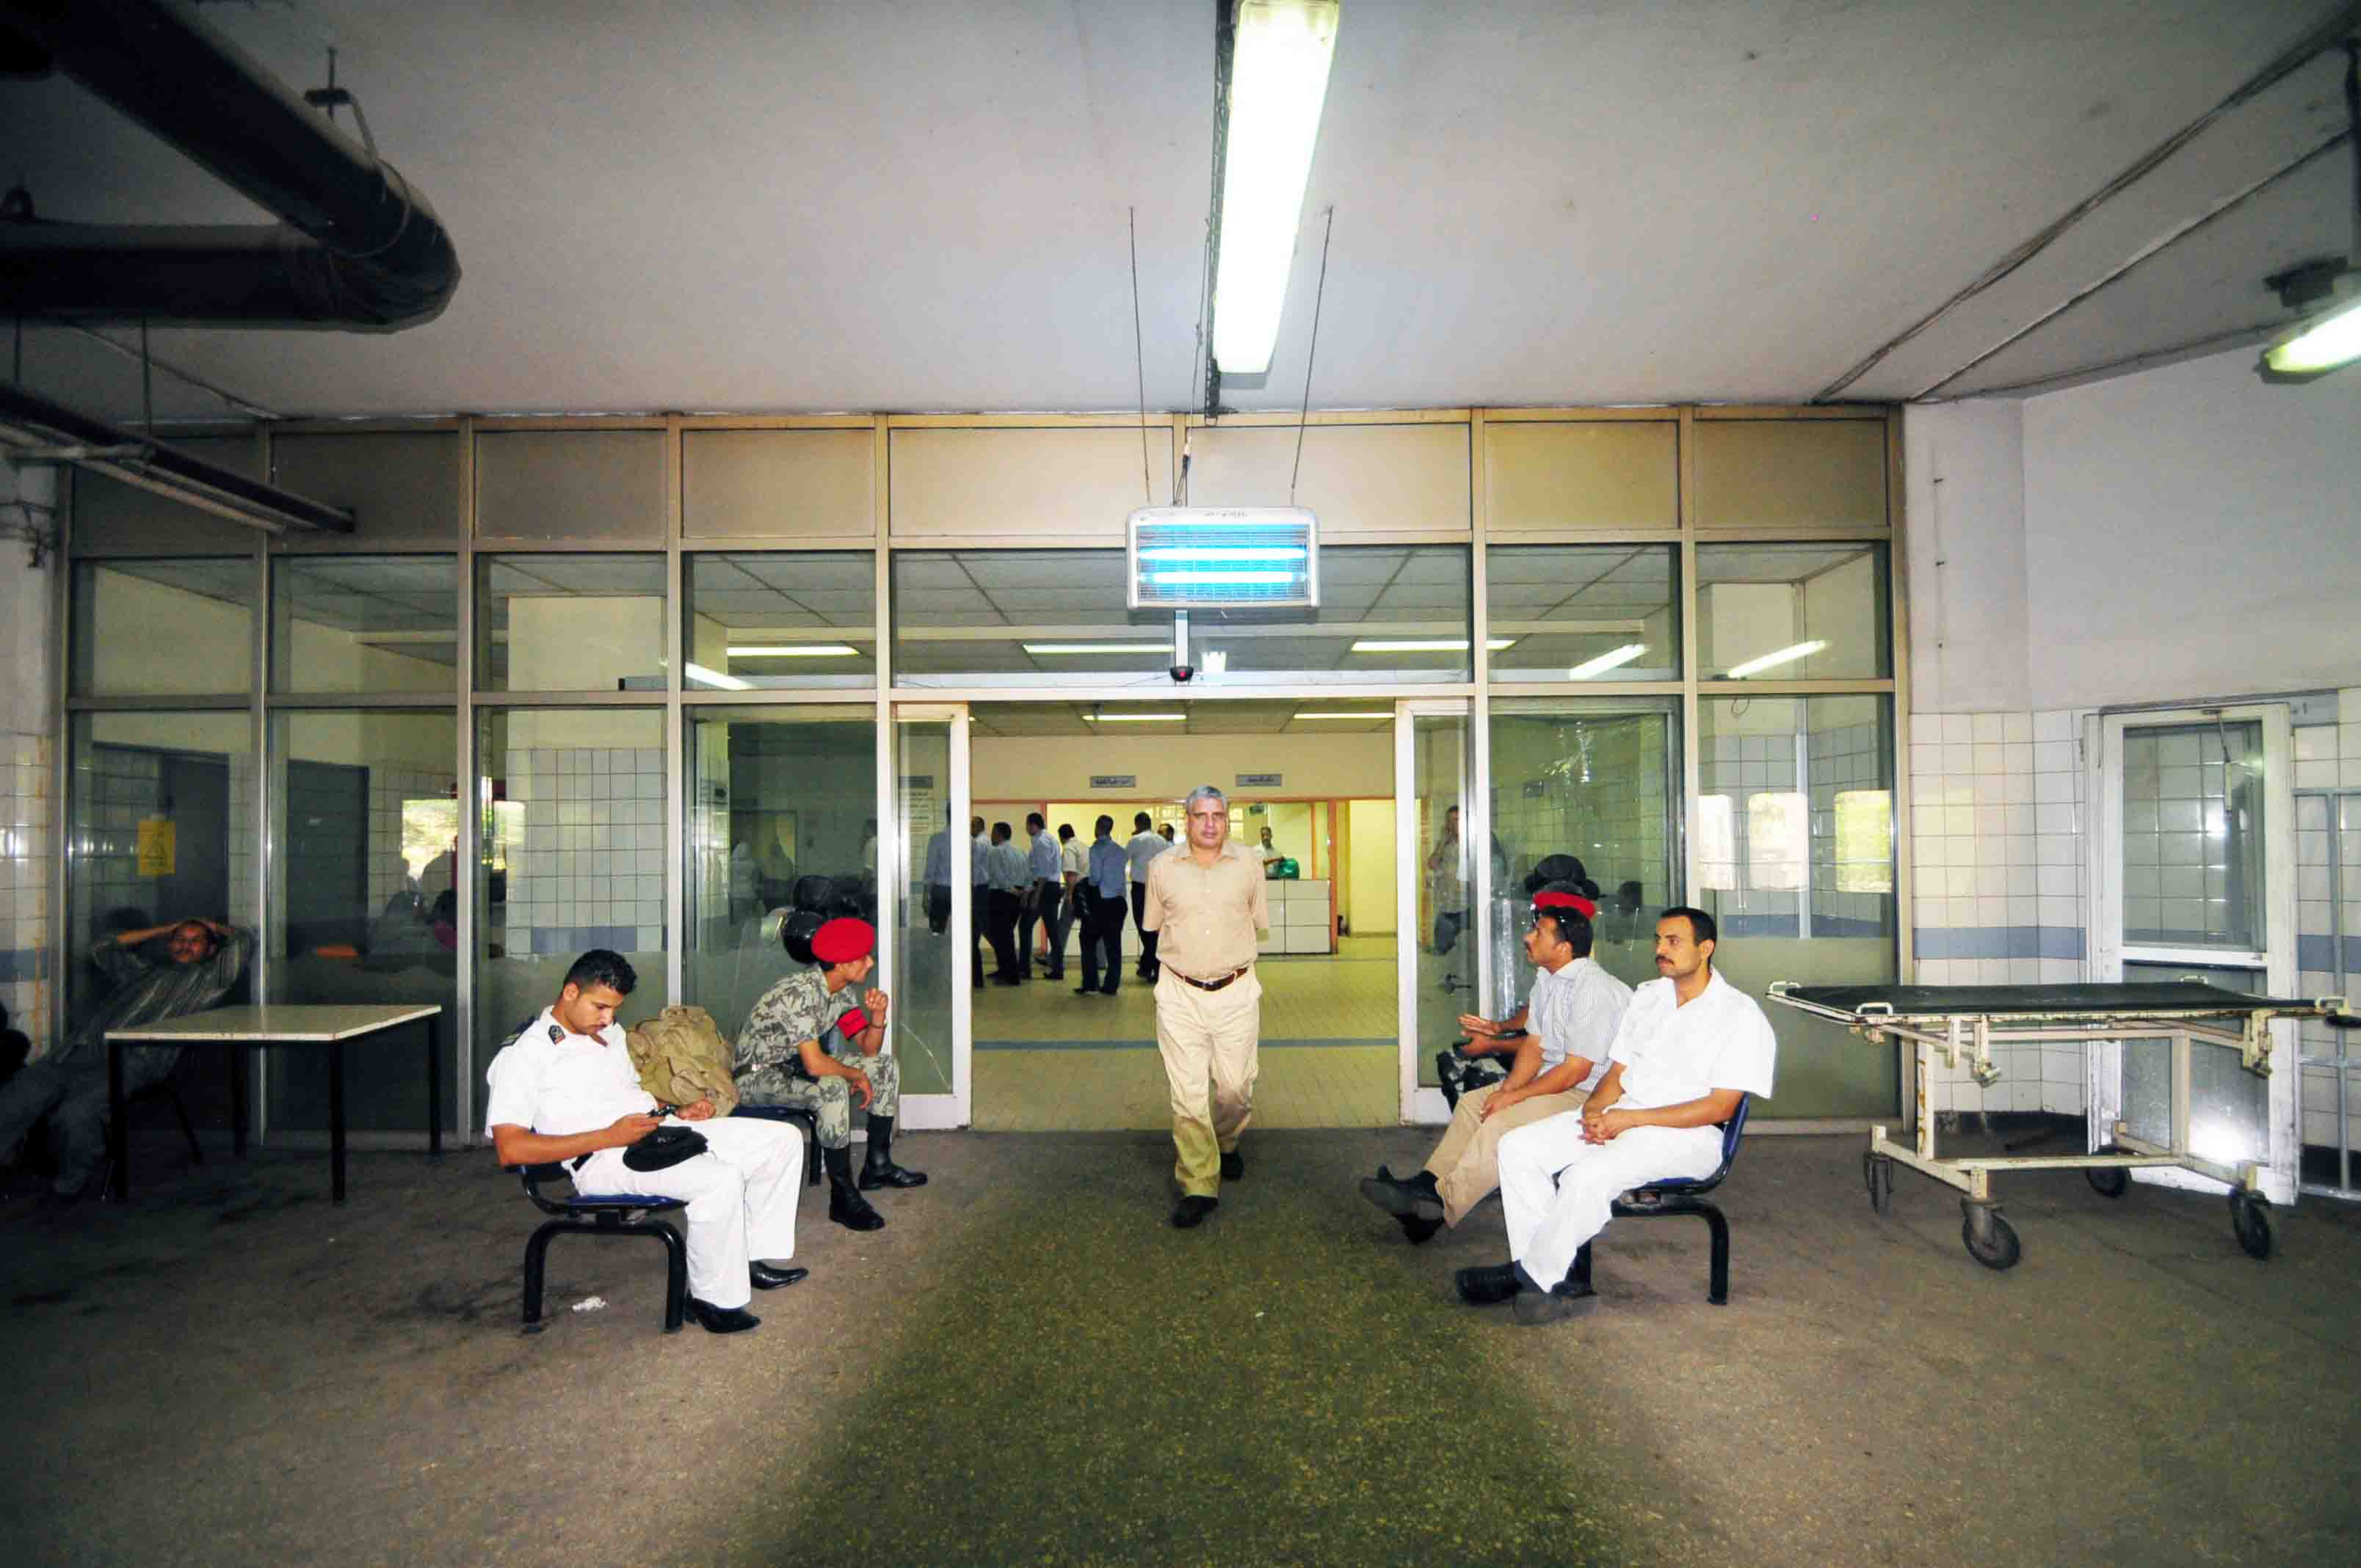 Guards sit at the entrance of Al-Mounir hospital in Cairo (File photo) Hassan Ibrahim / DNE